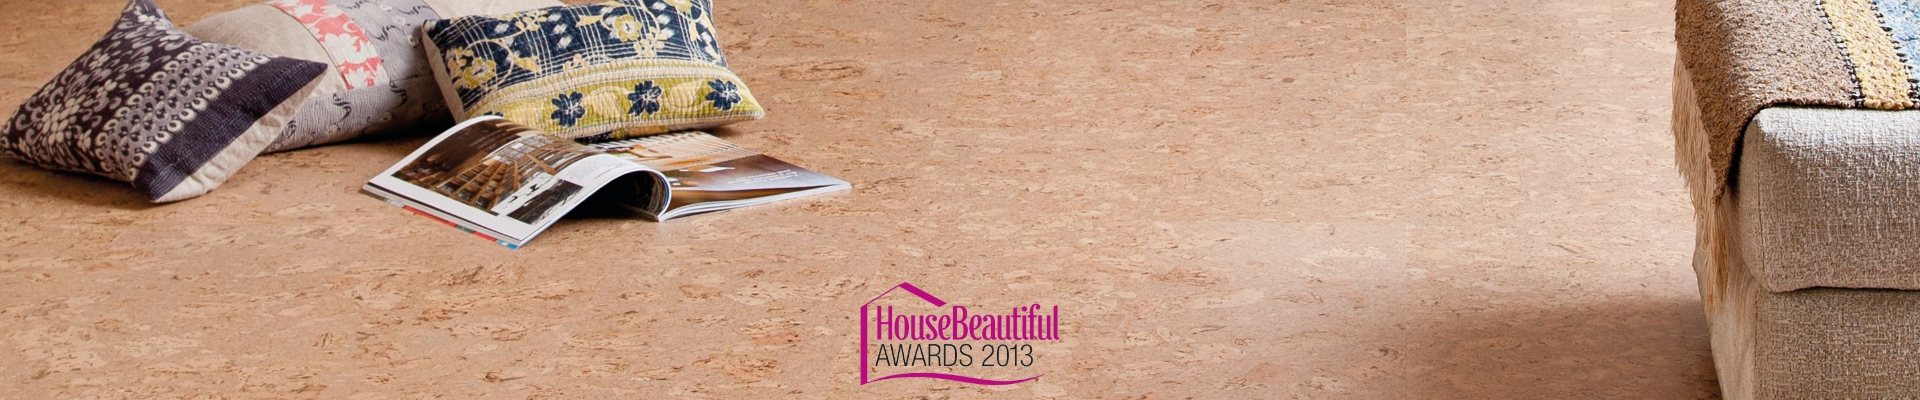 HouseBeautiful 2013